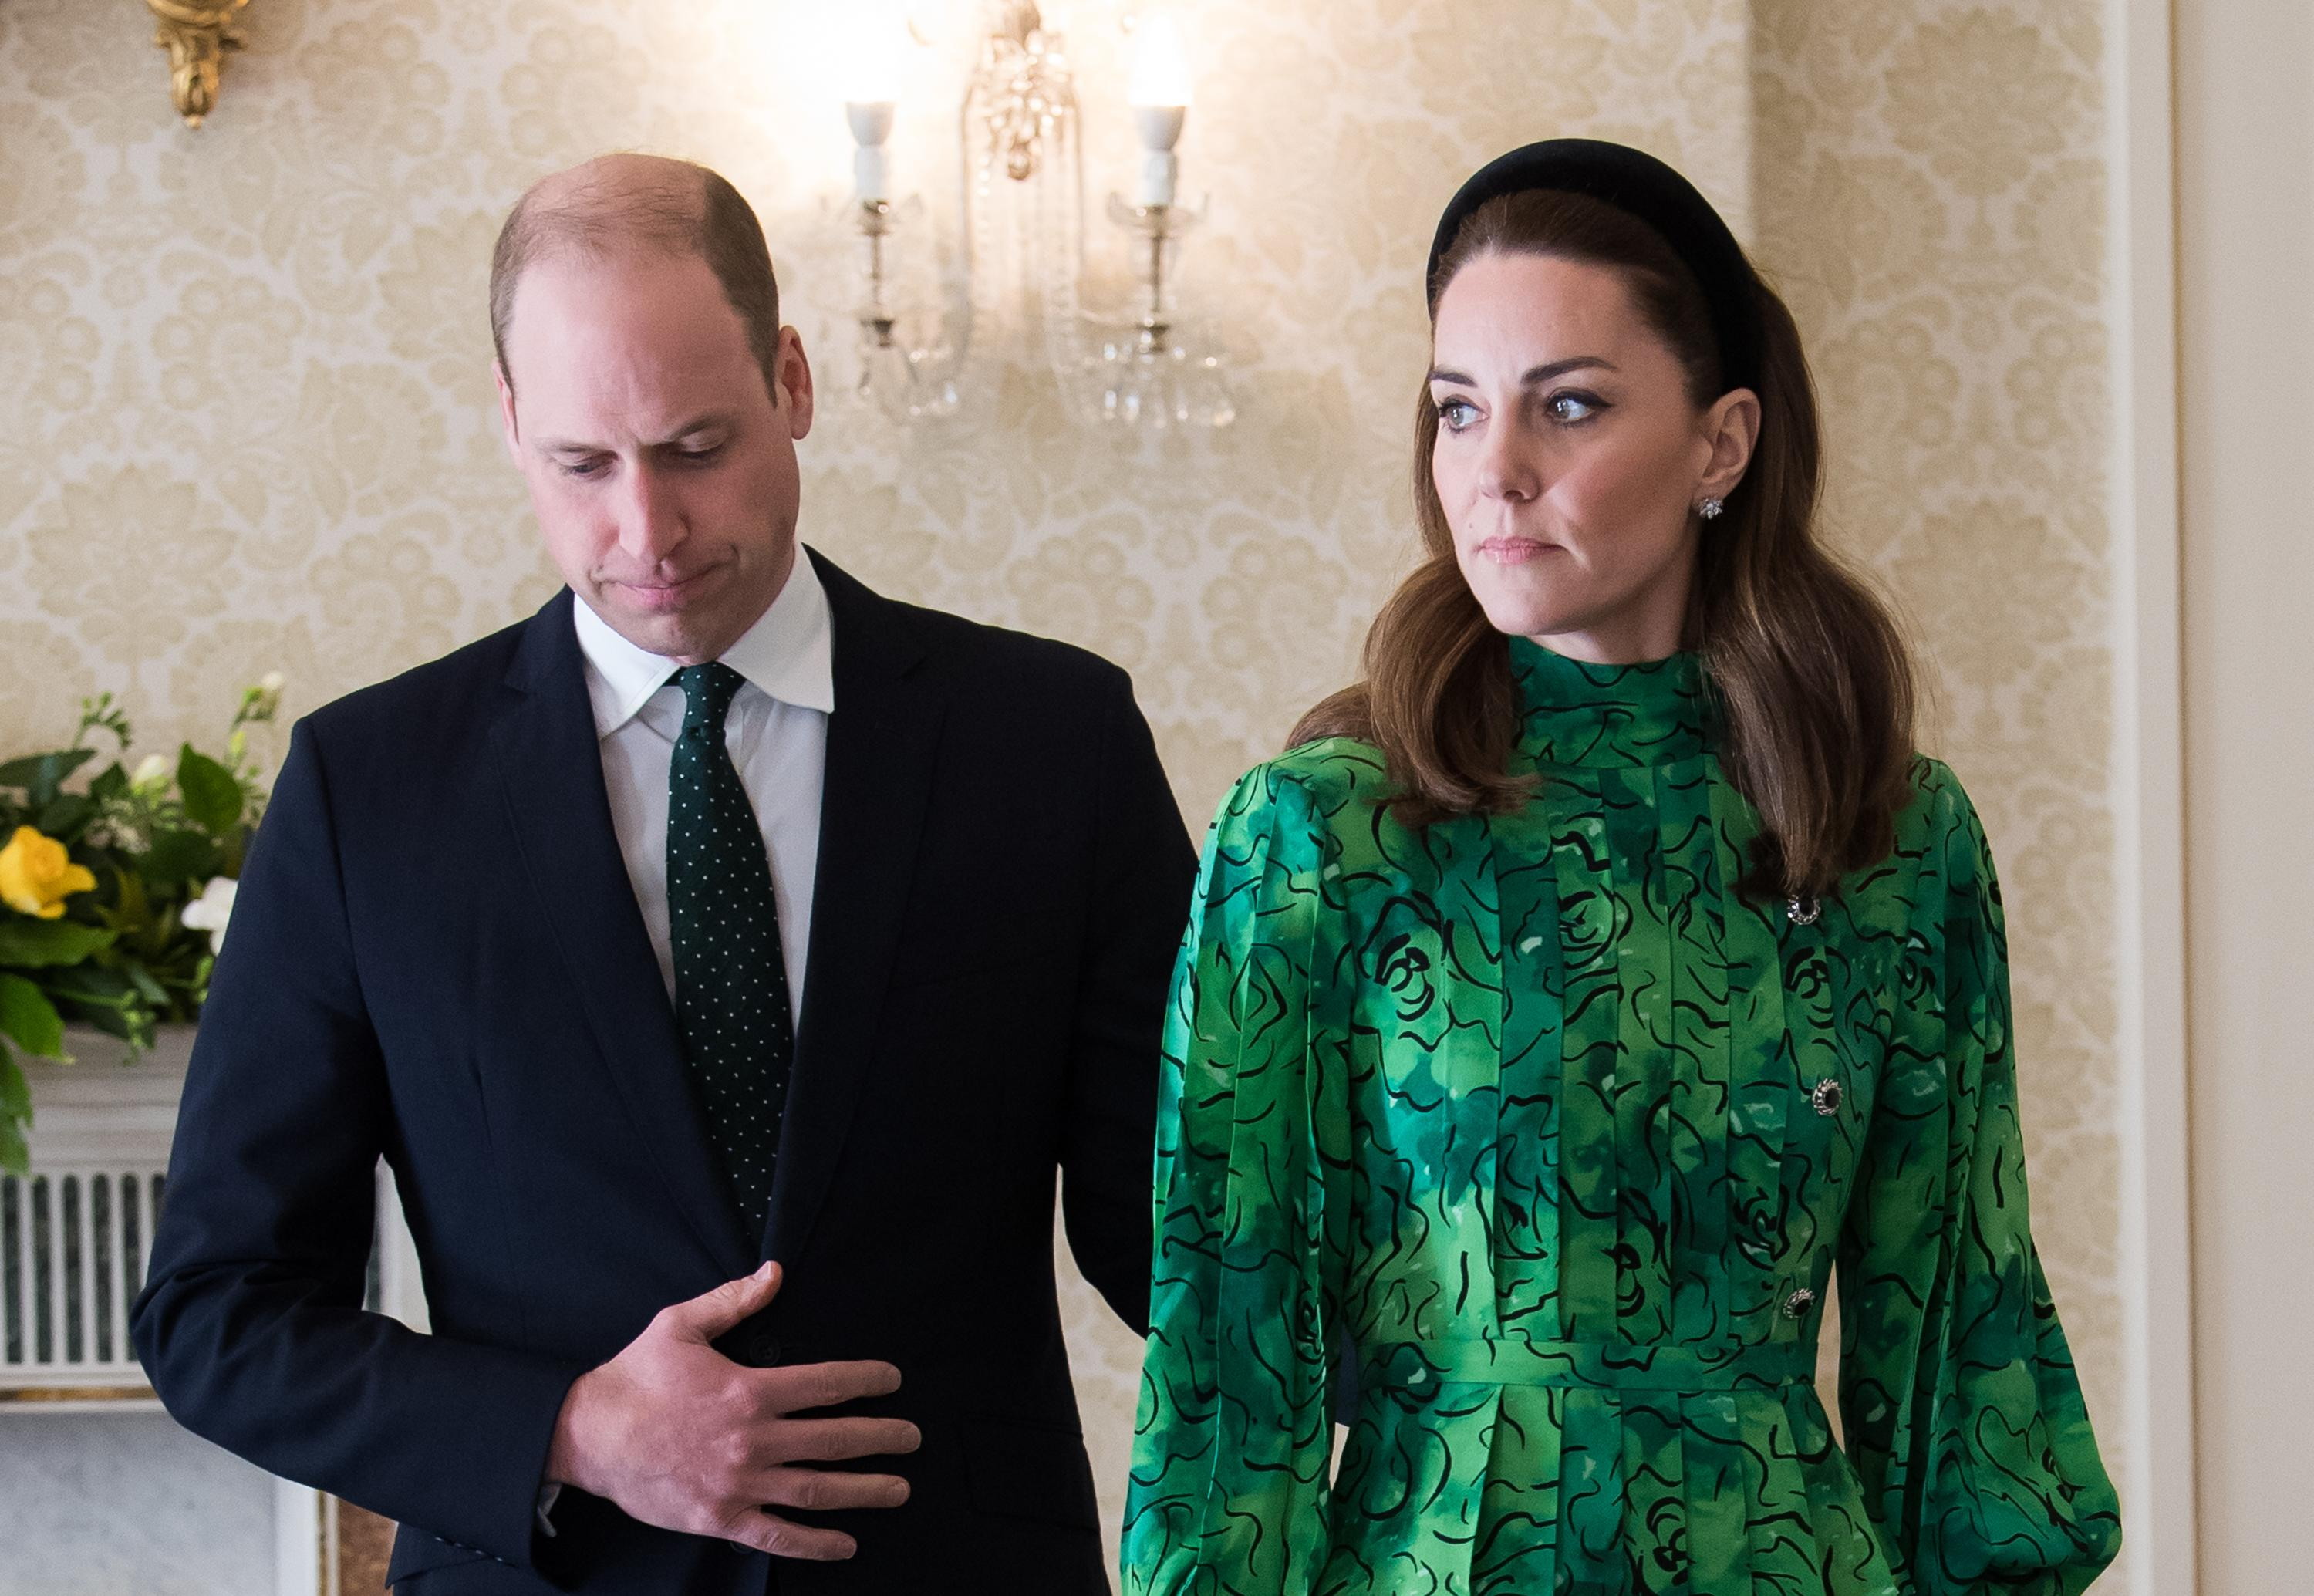 Kate and William take legal action over 'cruel and disgusting' magazine story